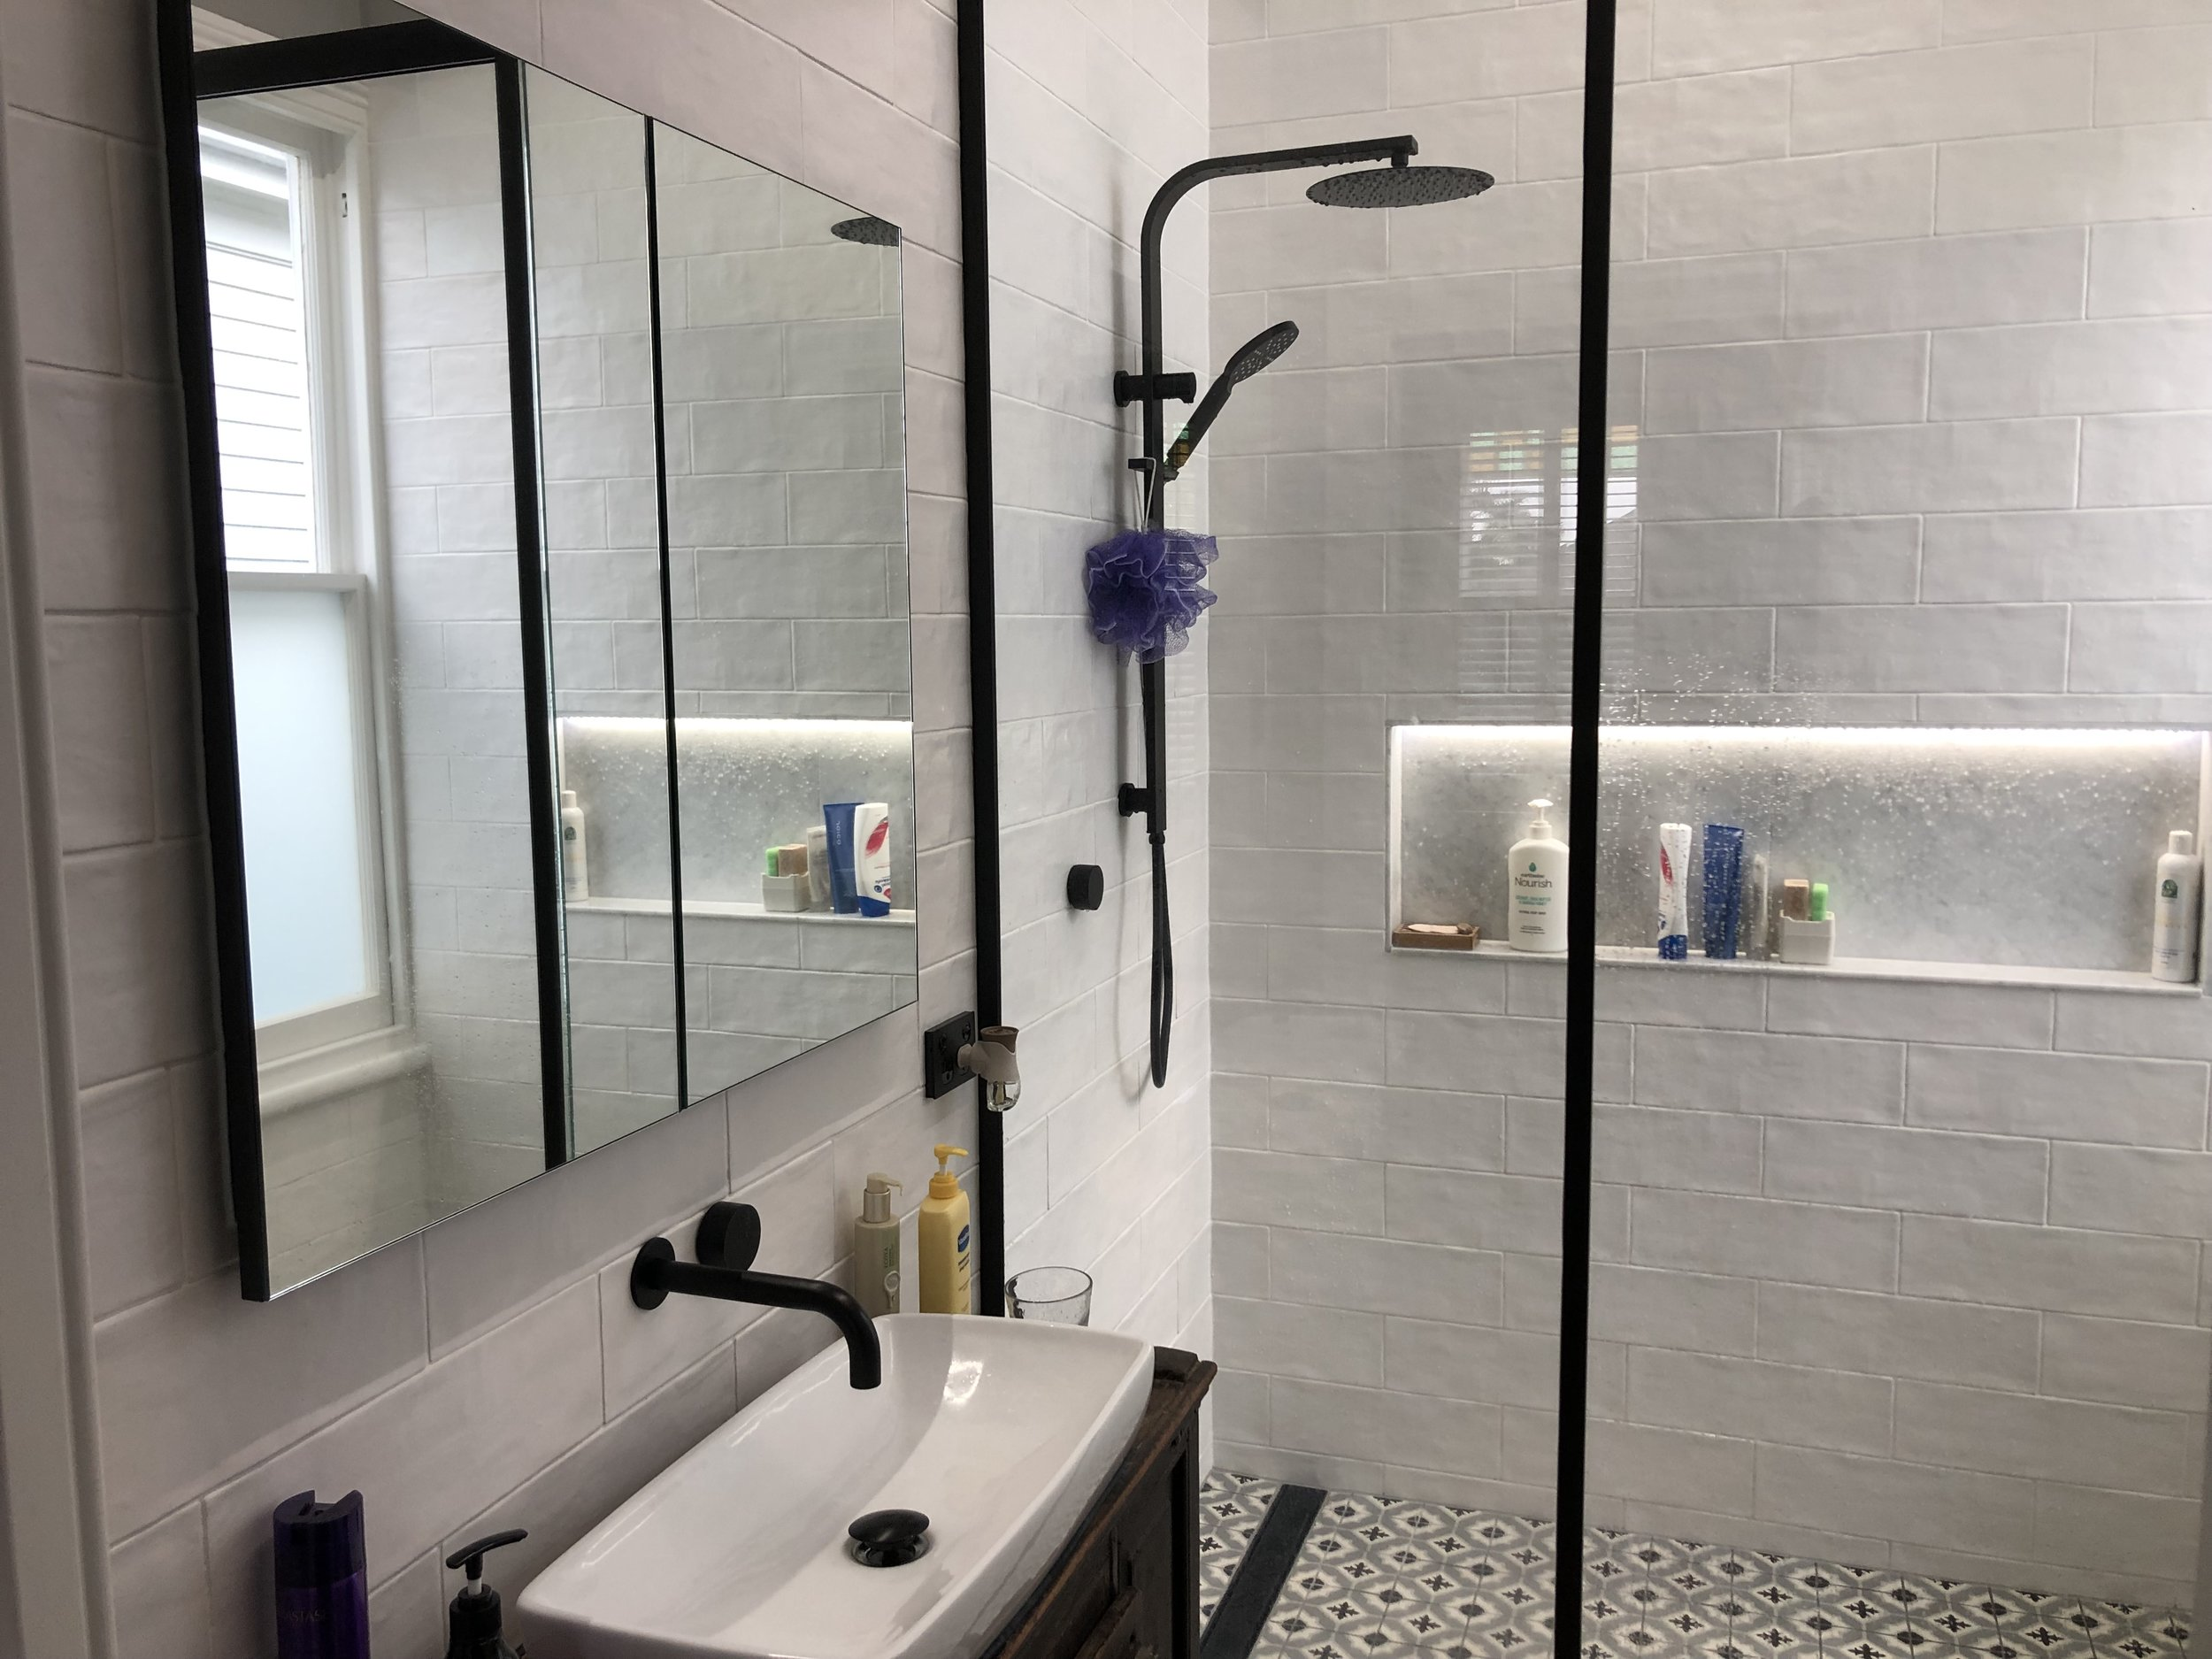 New home plumbing consultation, design and installation Auckland